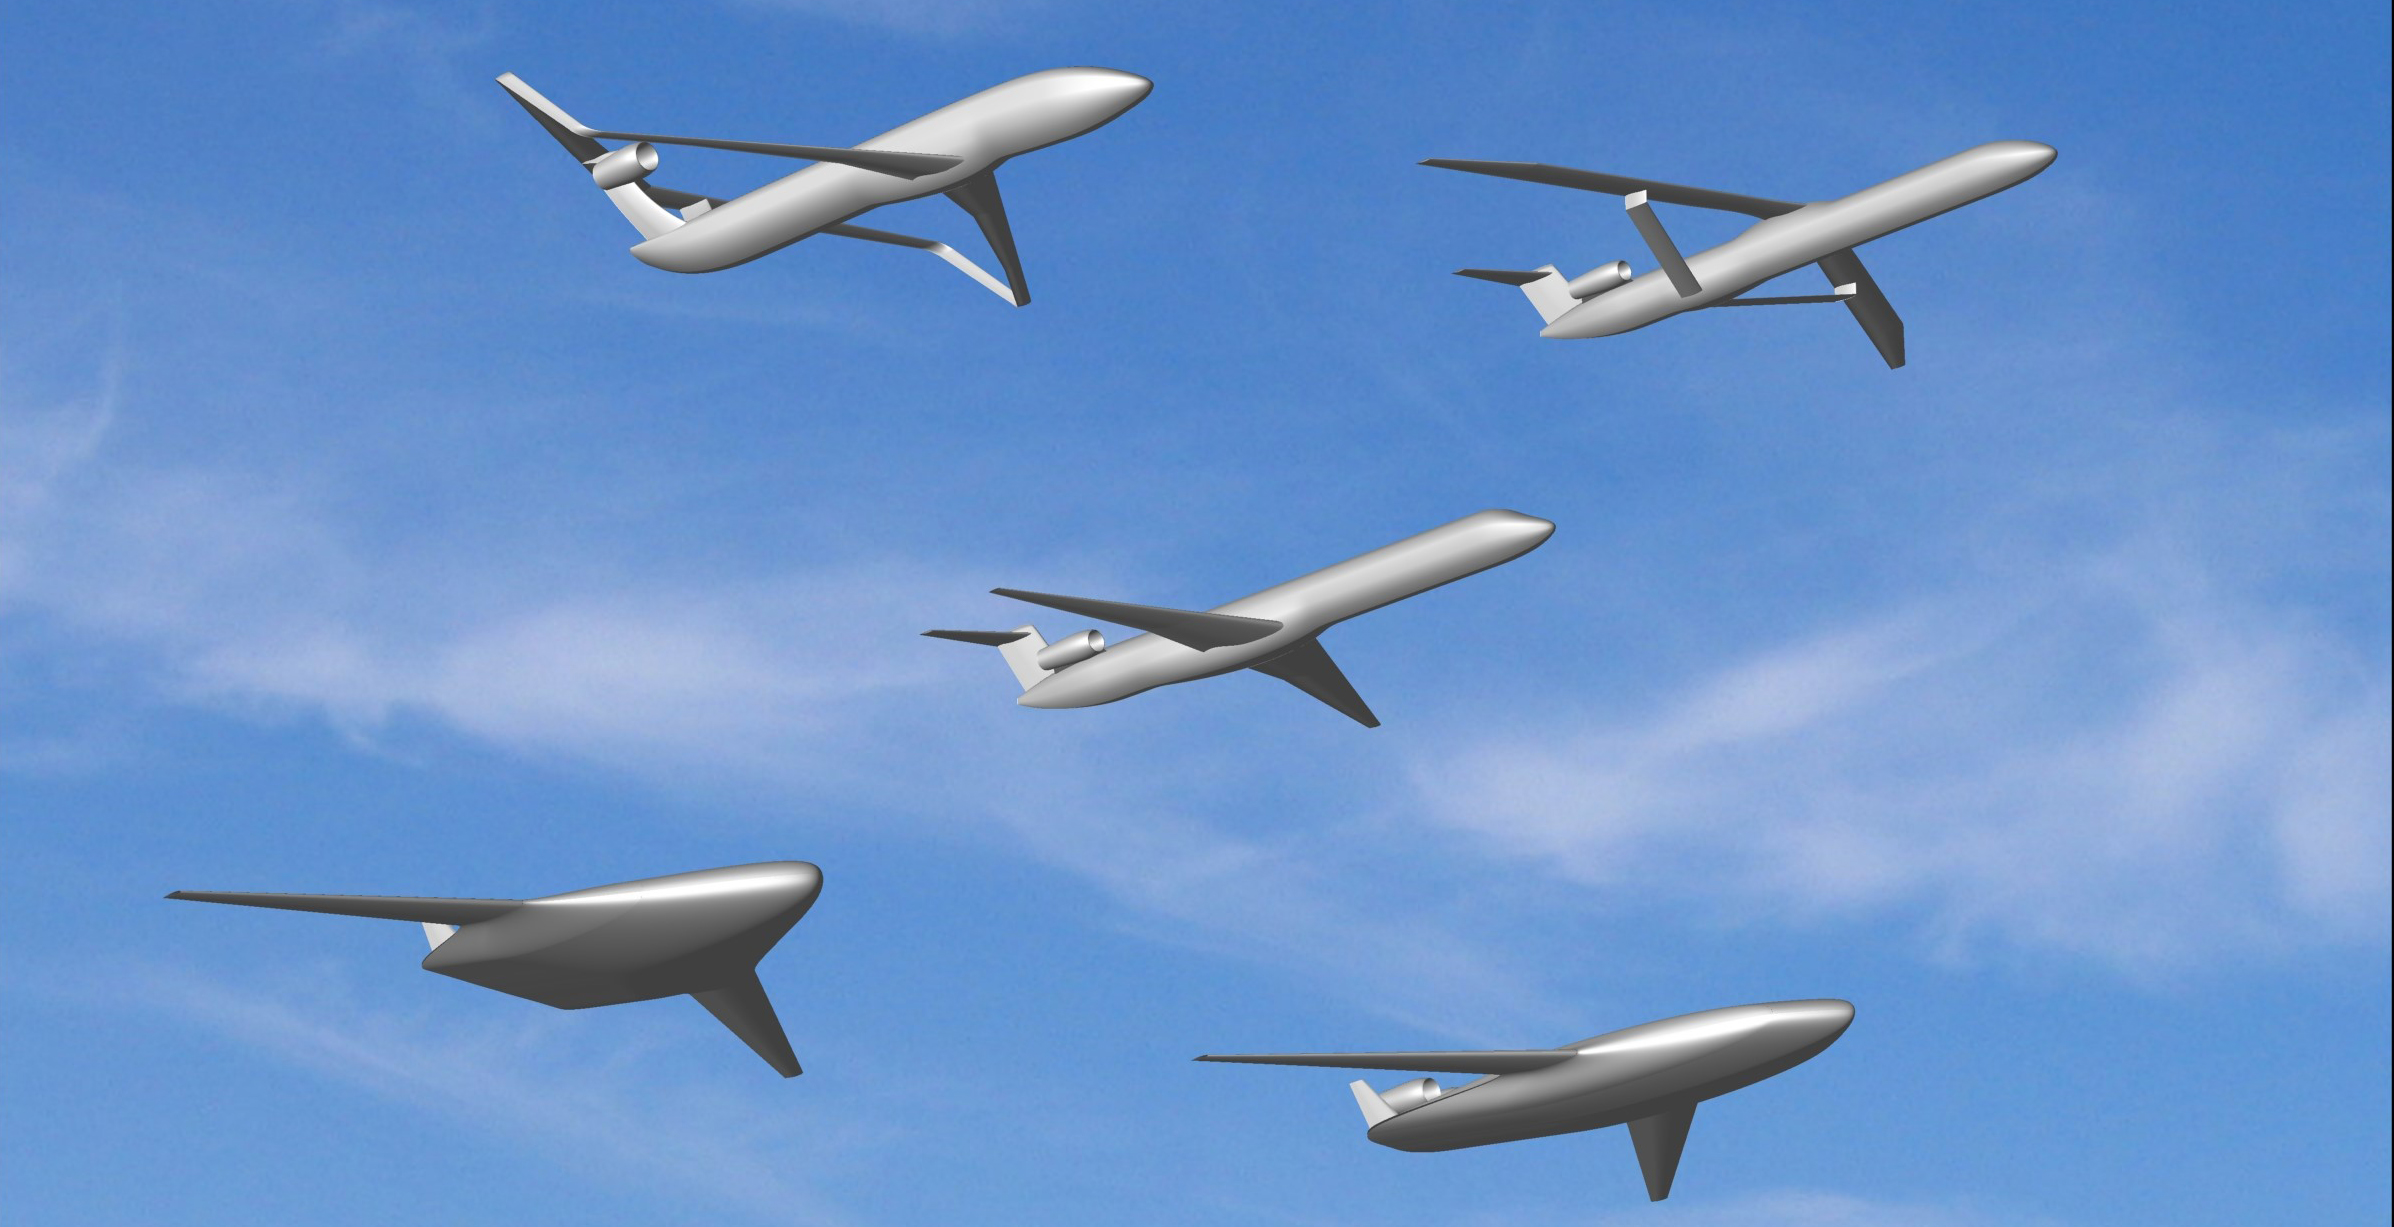 Unconventional aircraft configurations could be critical to achieving improved fuel efficiency and reduced emissions.